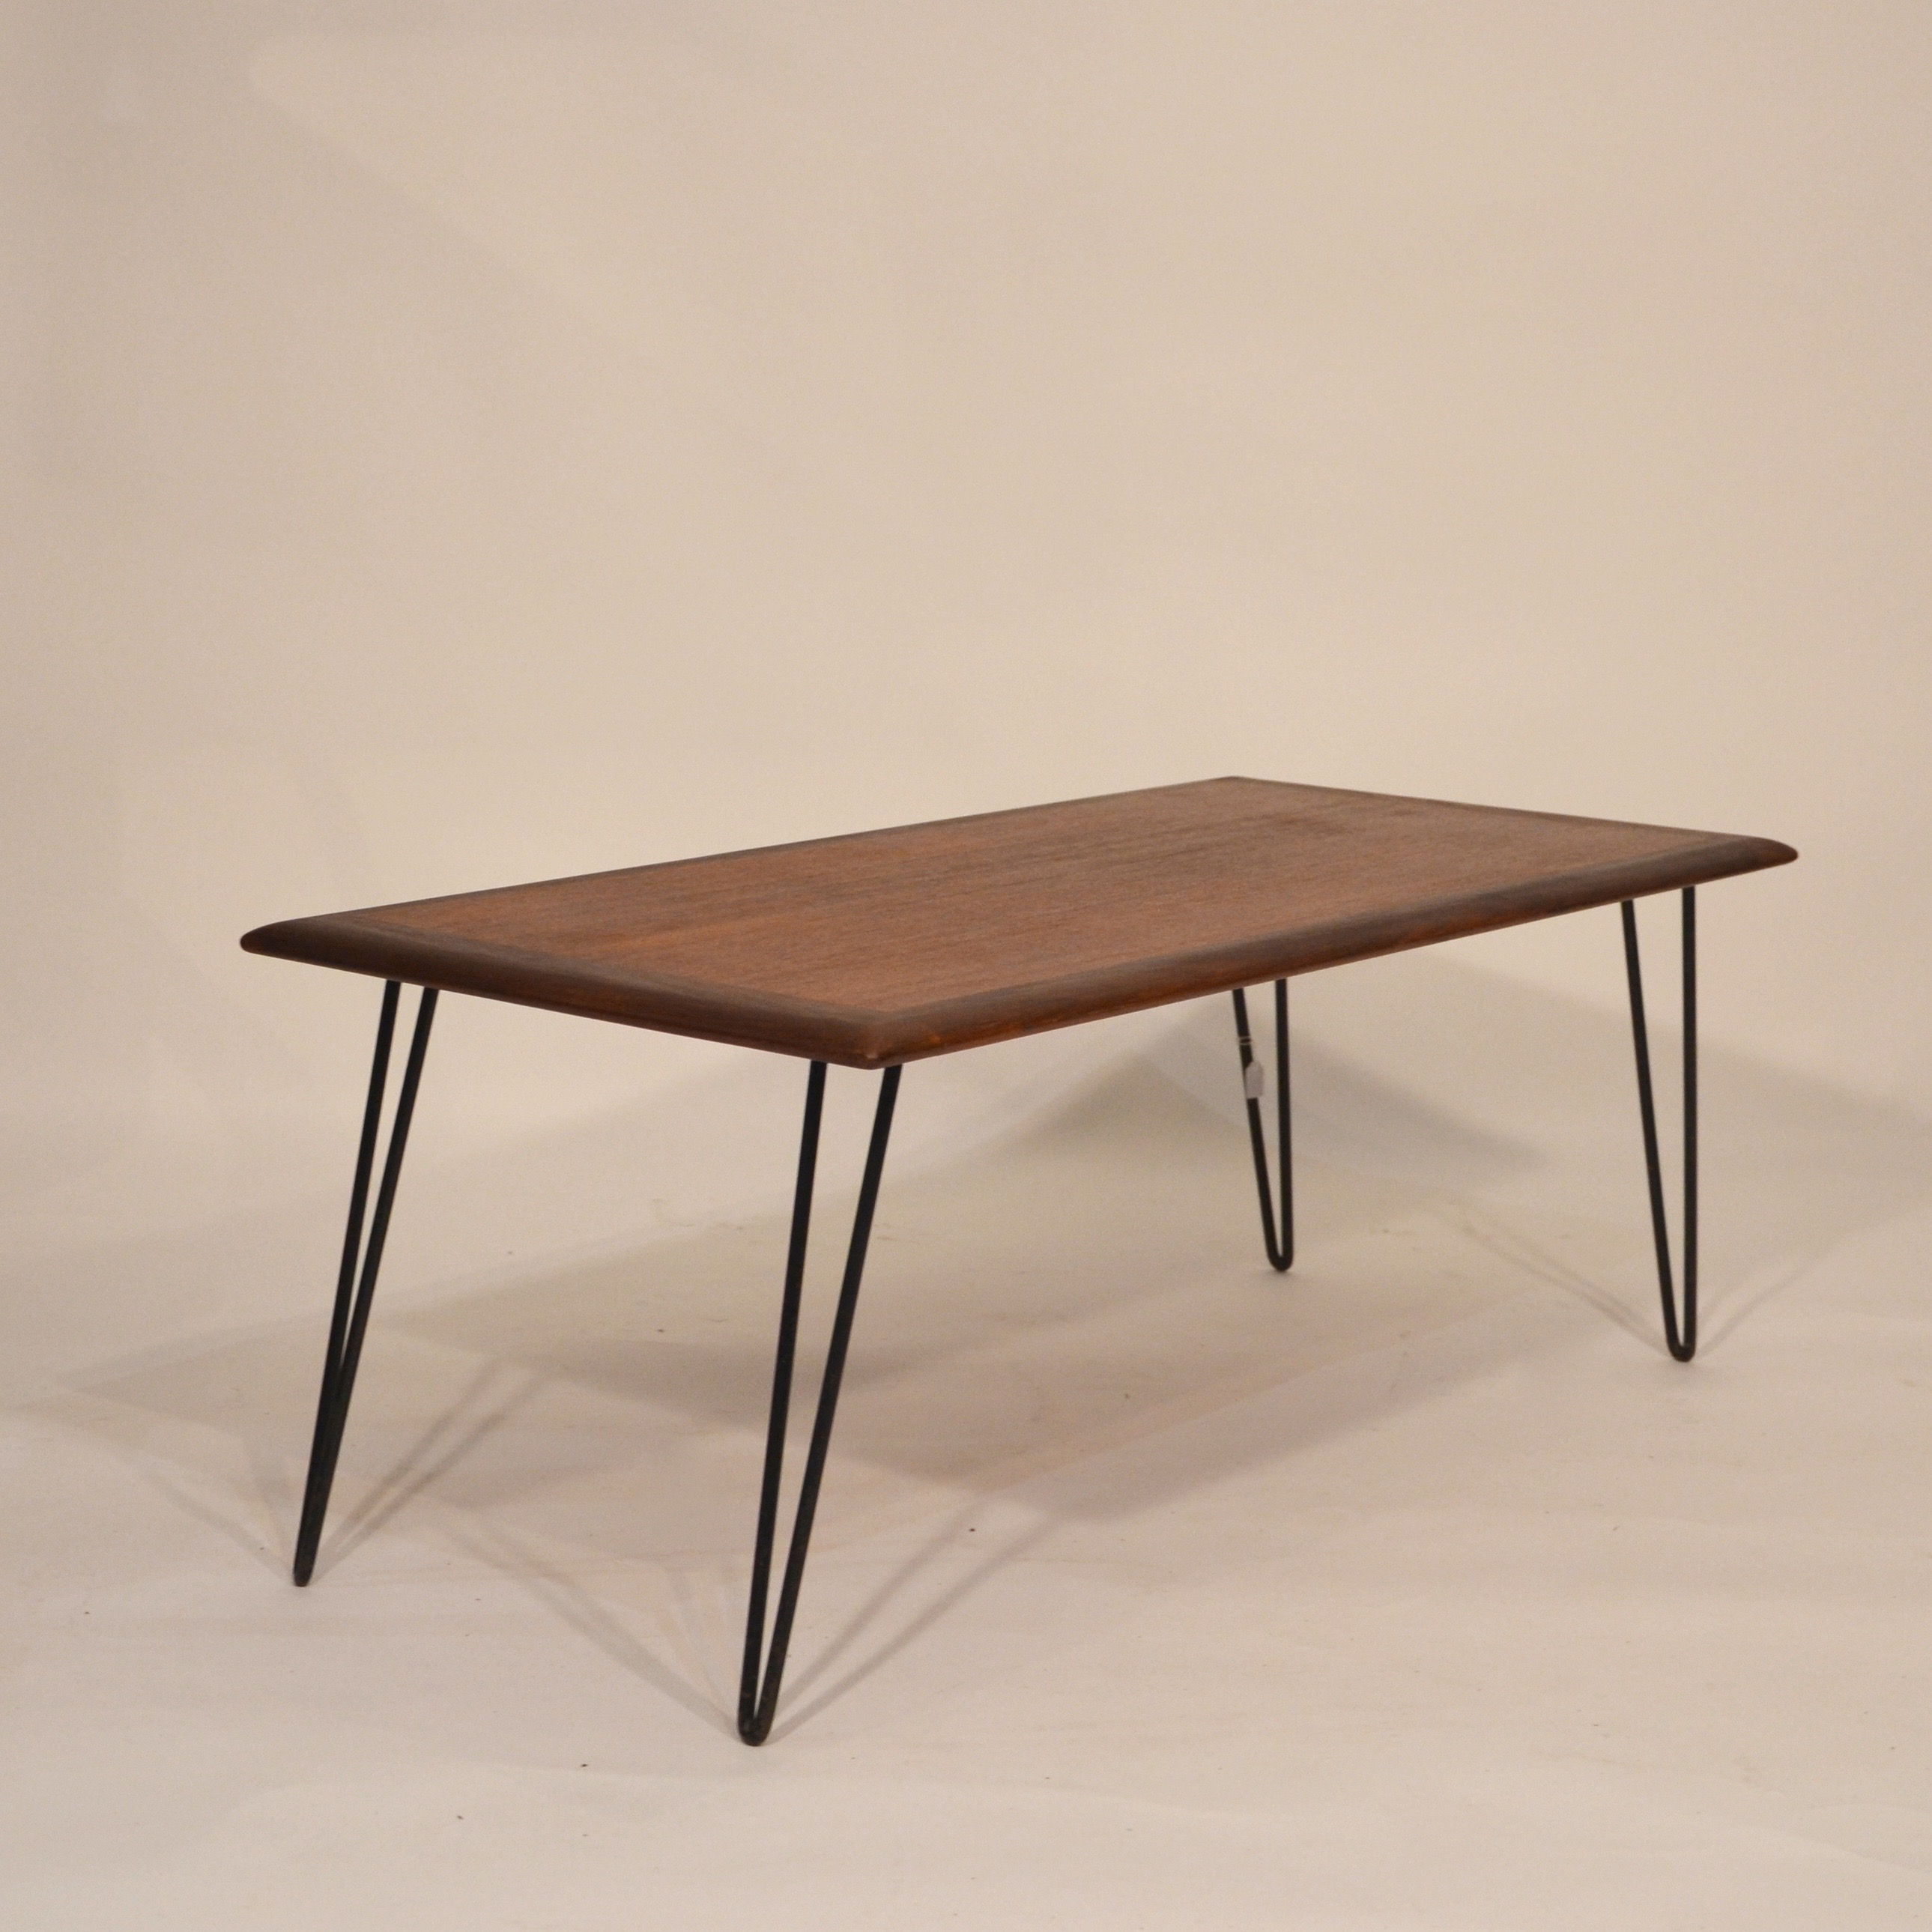 Pied De Table Basse Scandinave Table Basse Scandinave En Teck Et Pieds Métal Bindiesbindies